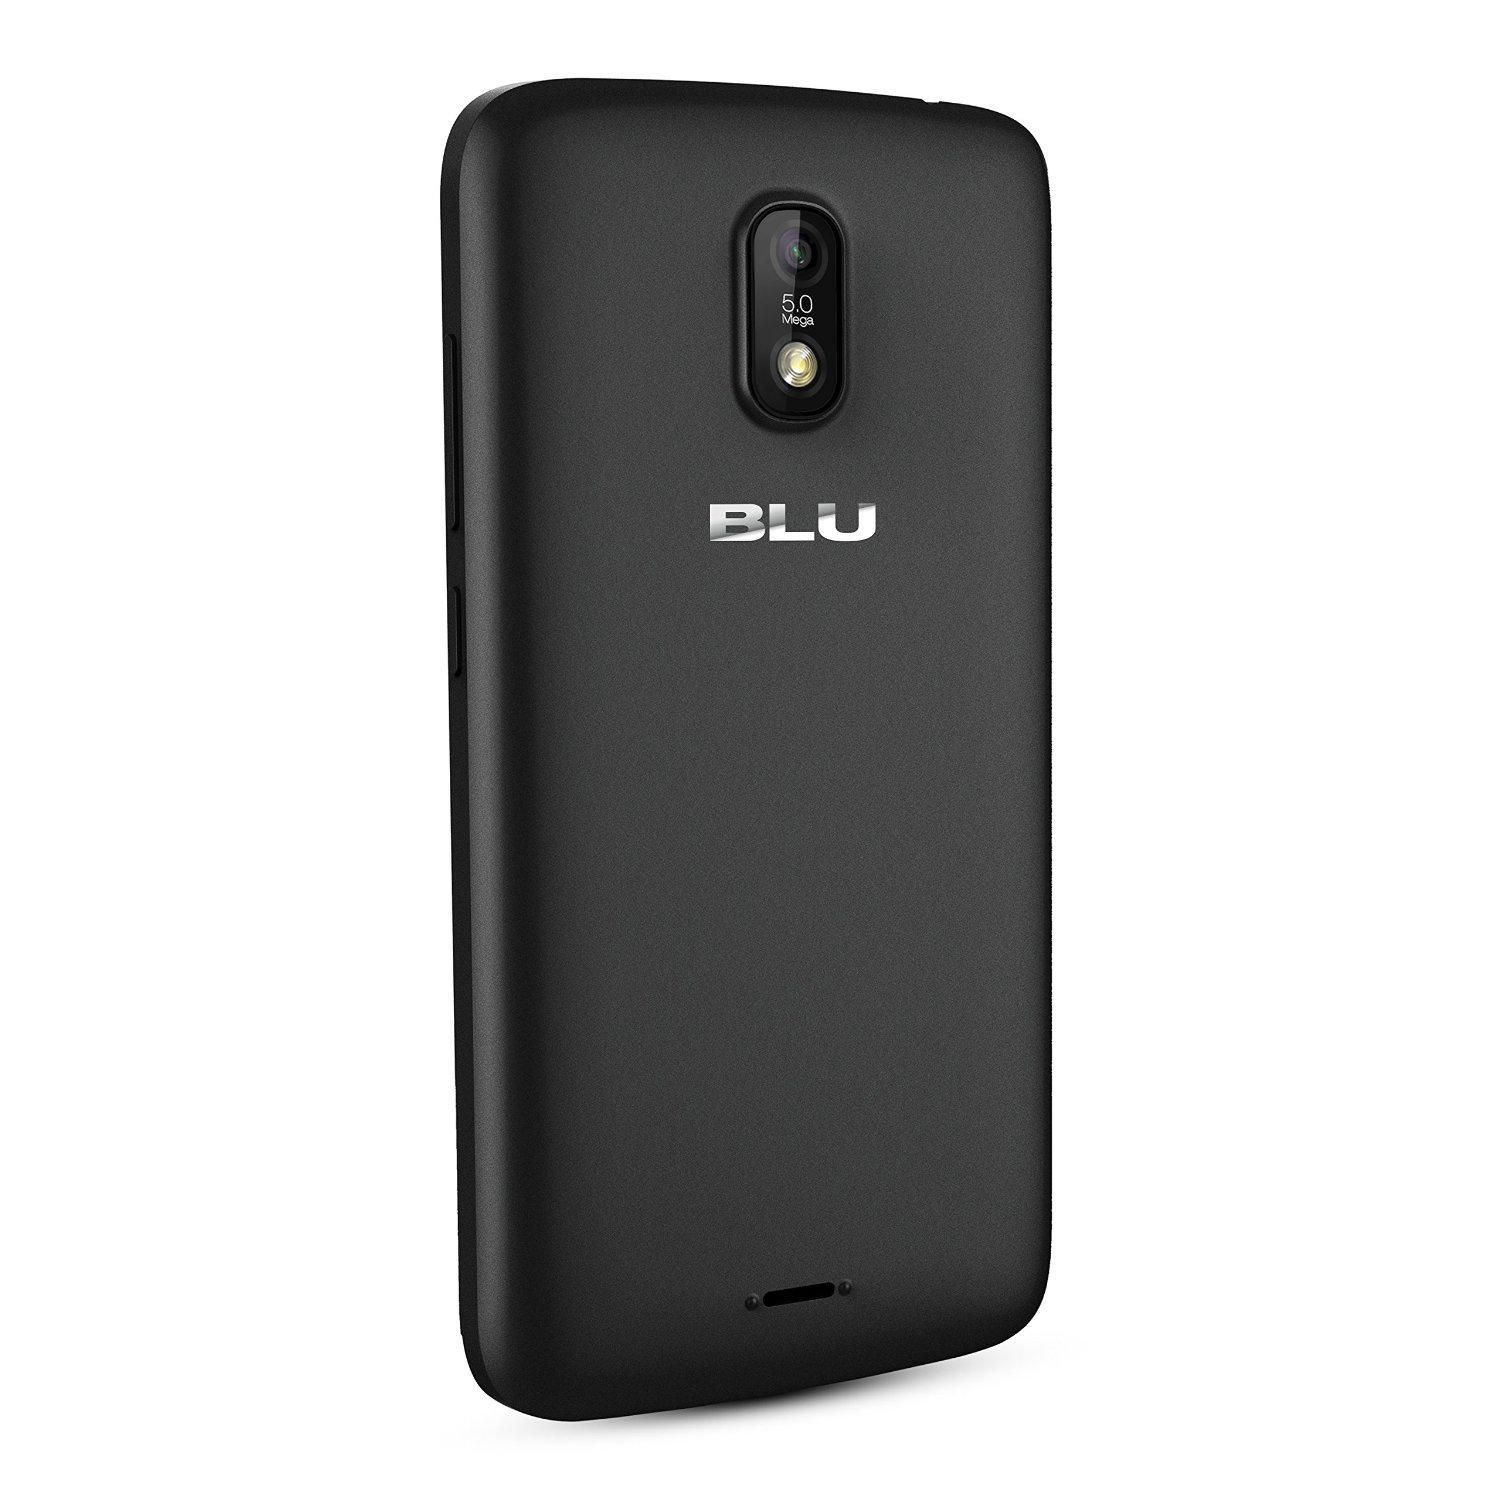 Blu studio g android smart phone unlocked walmart canada reheart Image collections